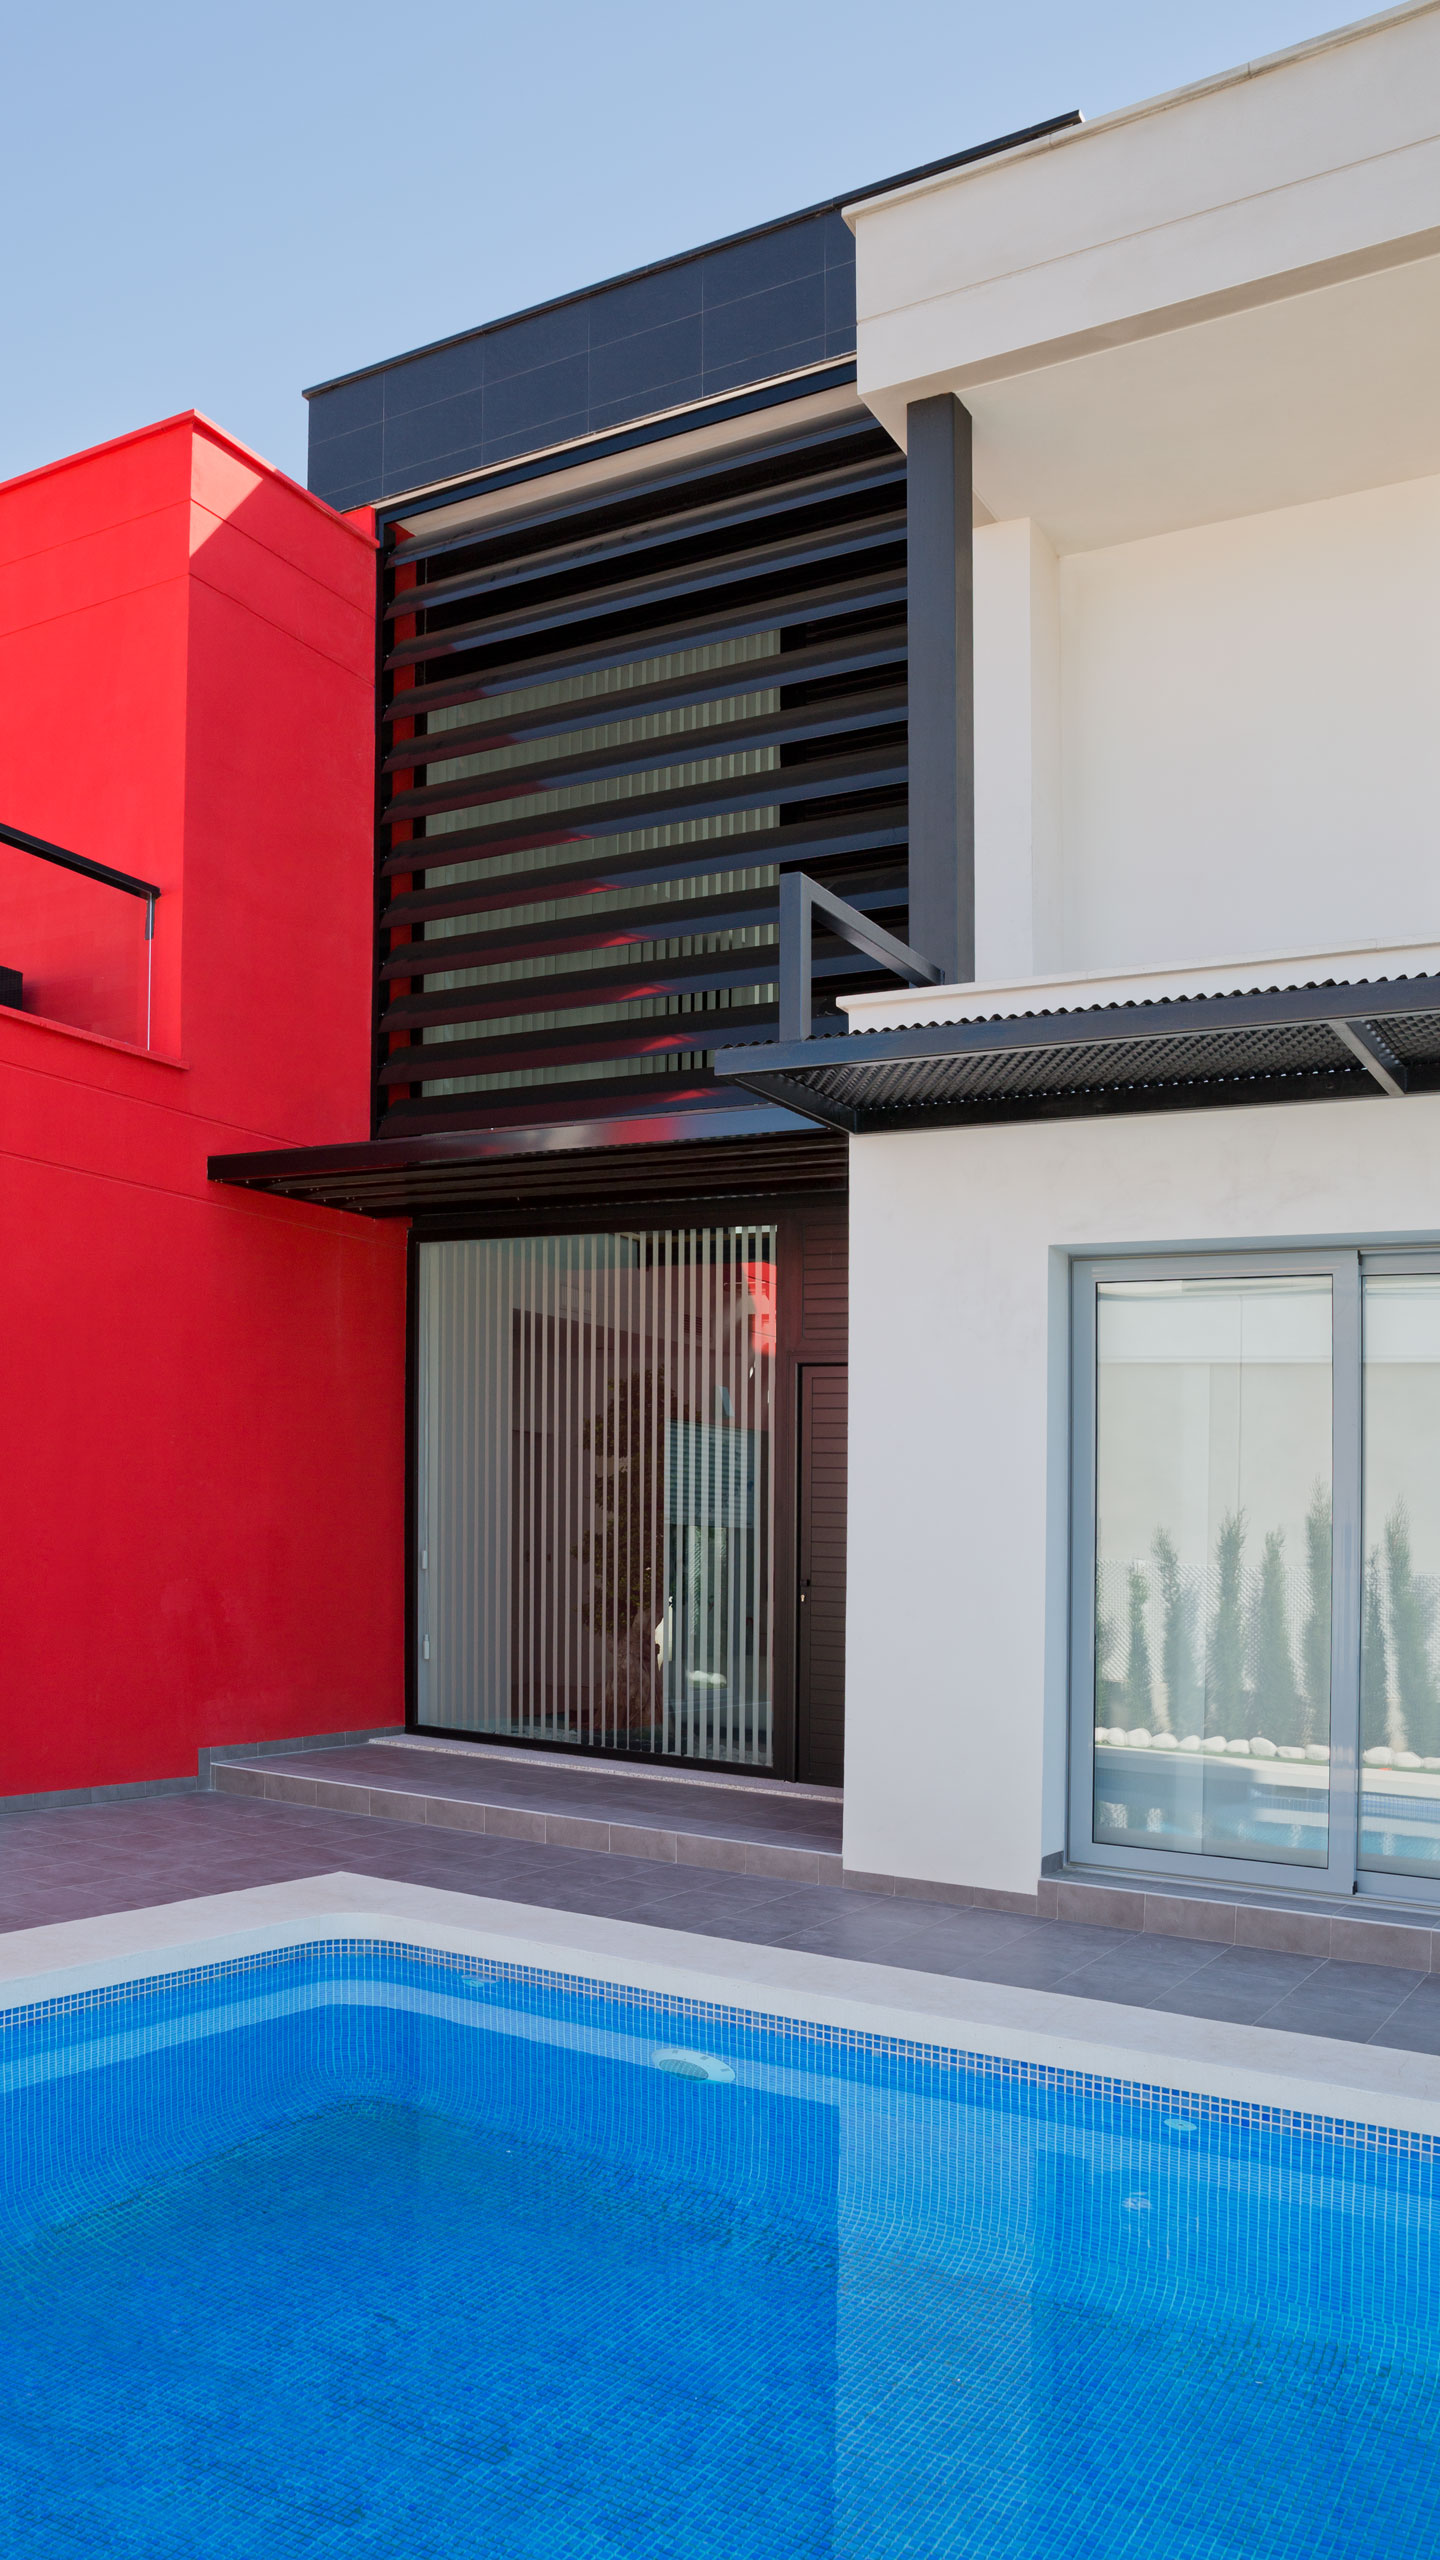 O-300 Louvers – Installed in residential areas